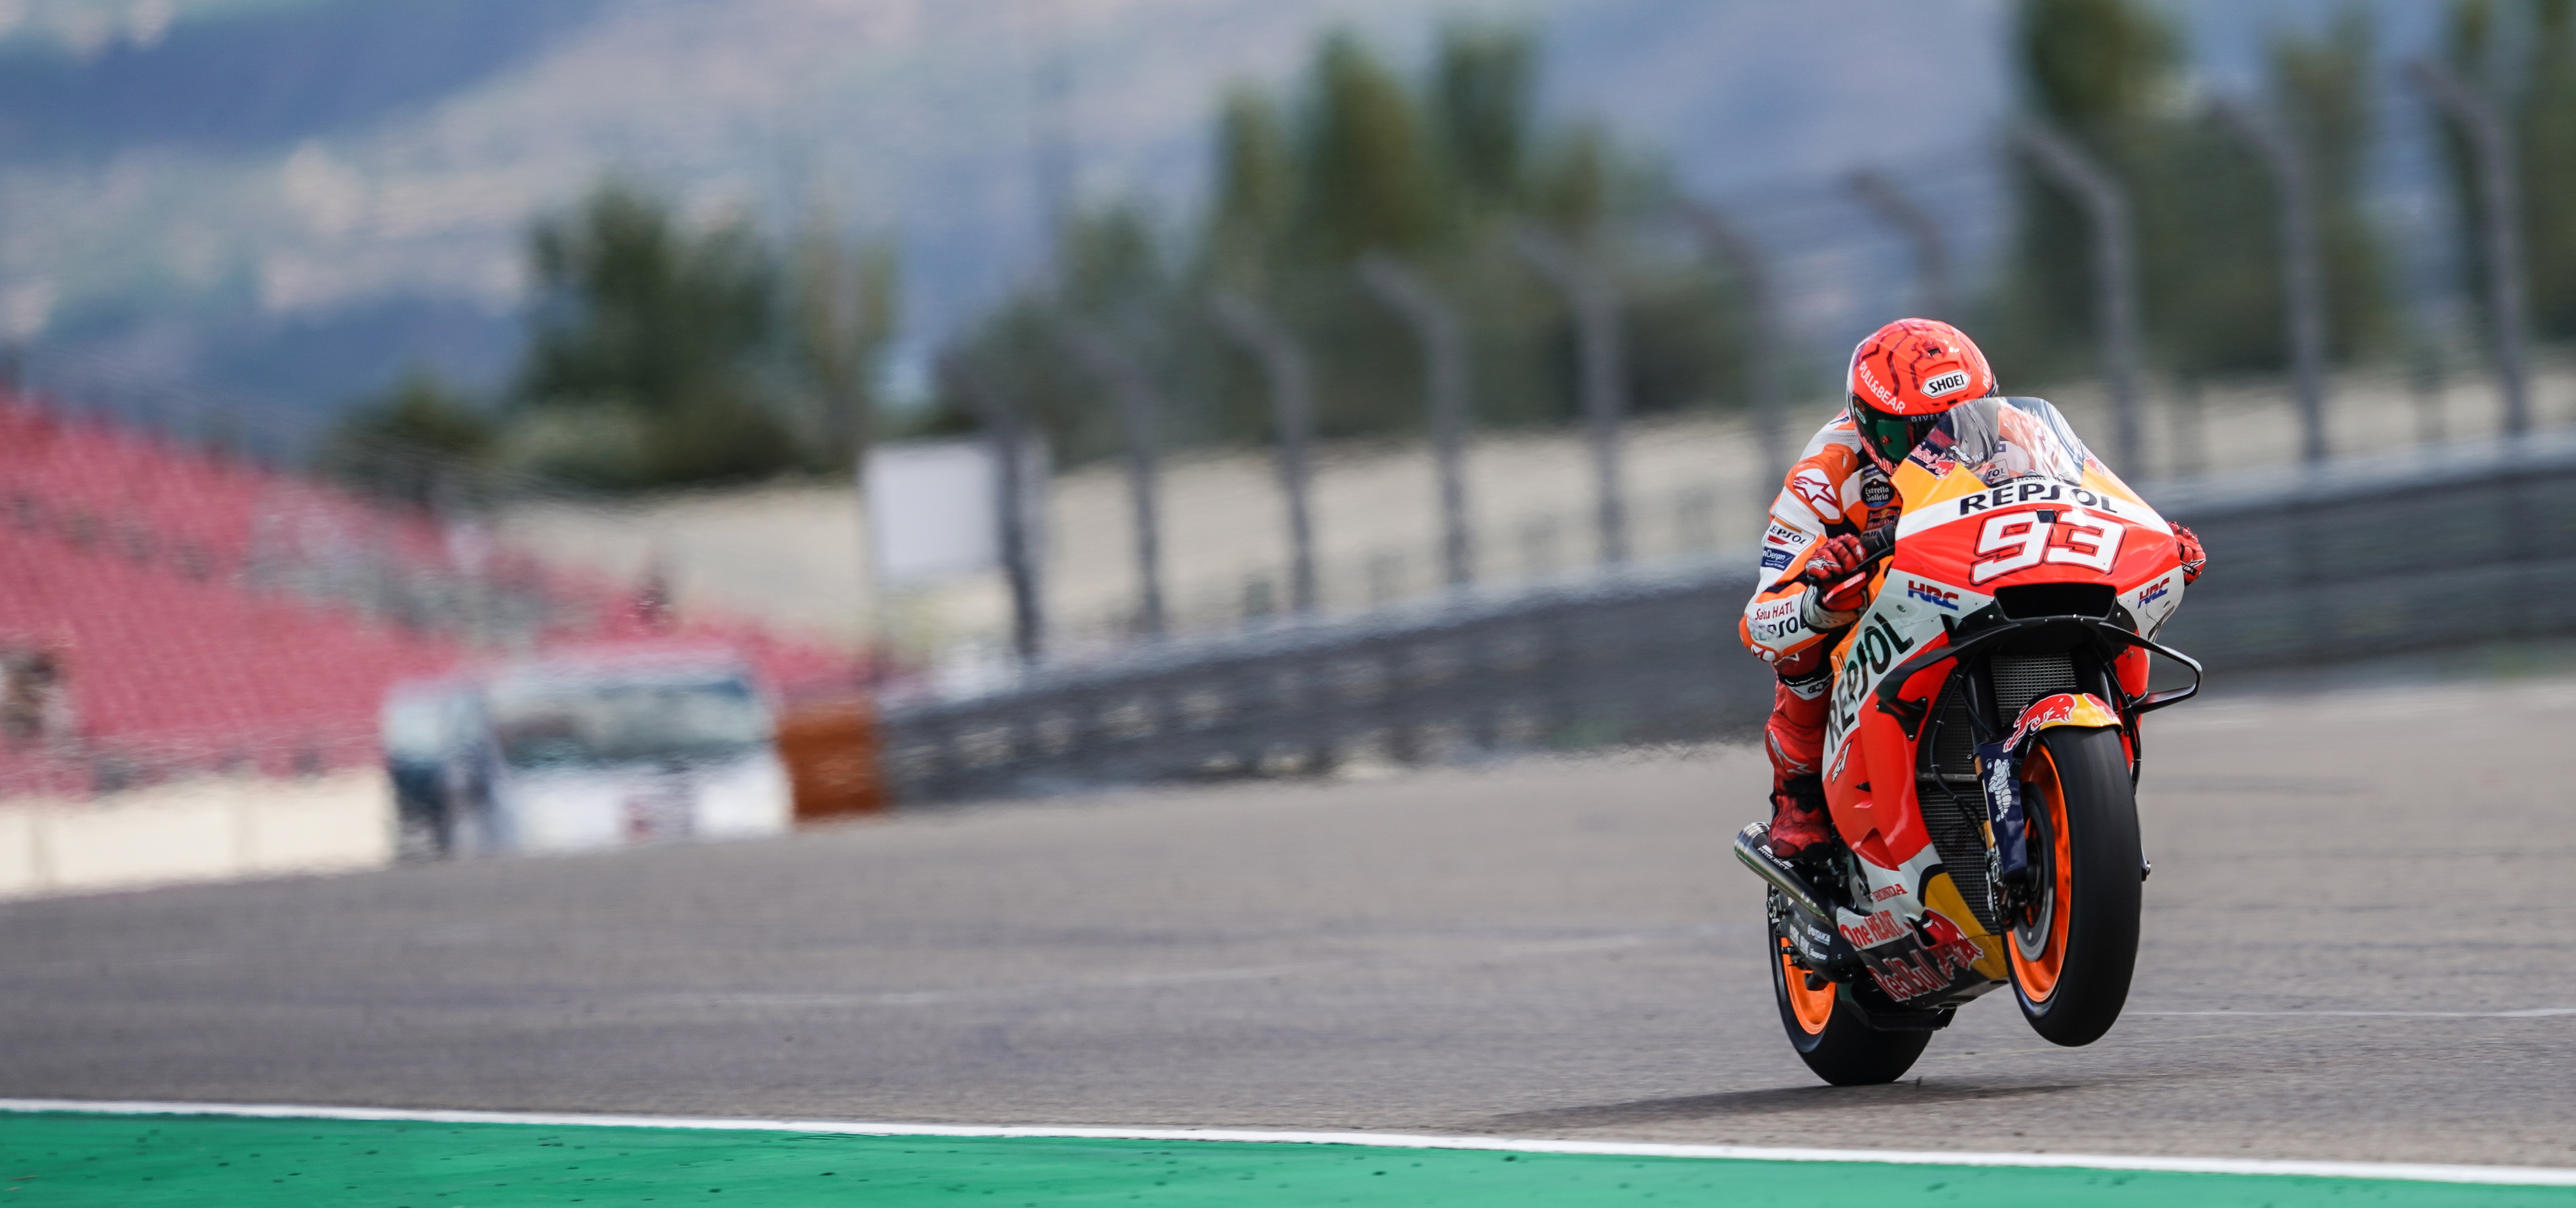 Repsol Honda Team have first contact with MotorLand